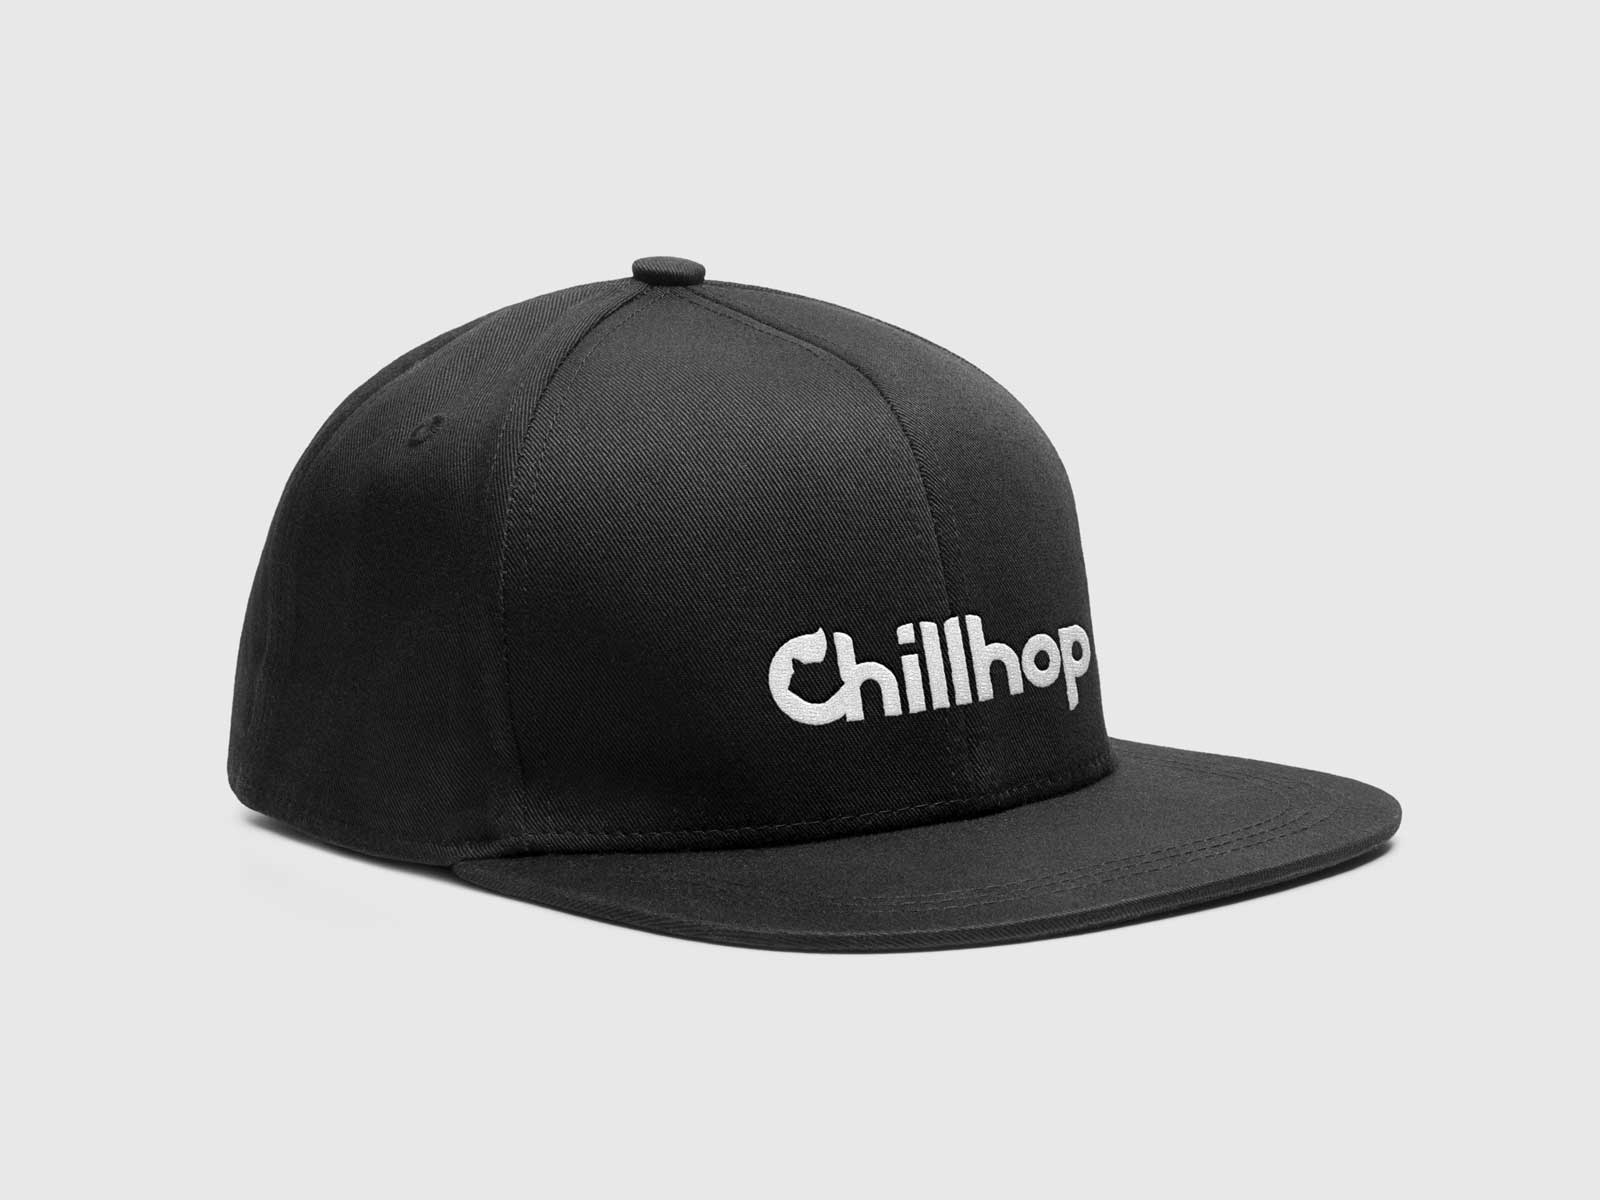 Chillhop Music new raccoon logo snapback branding